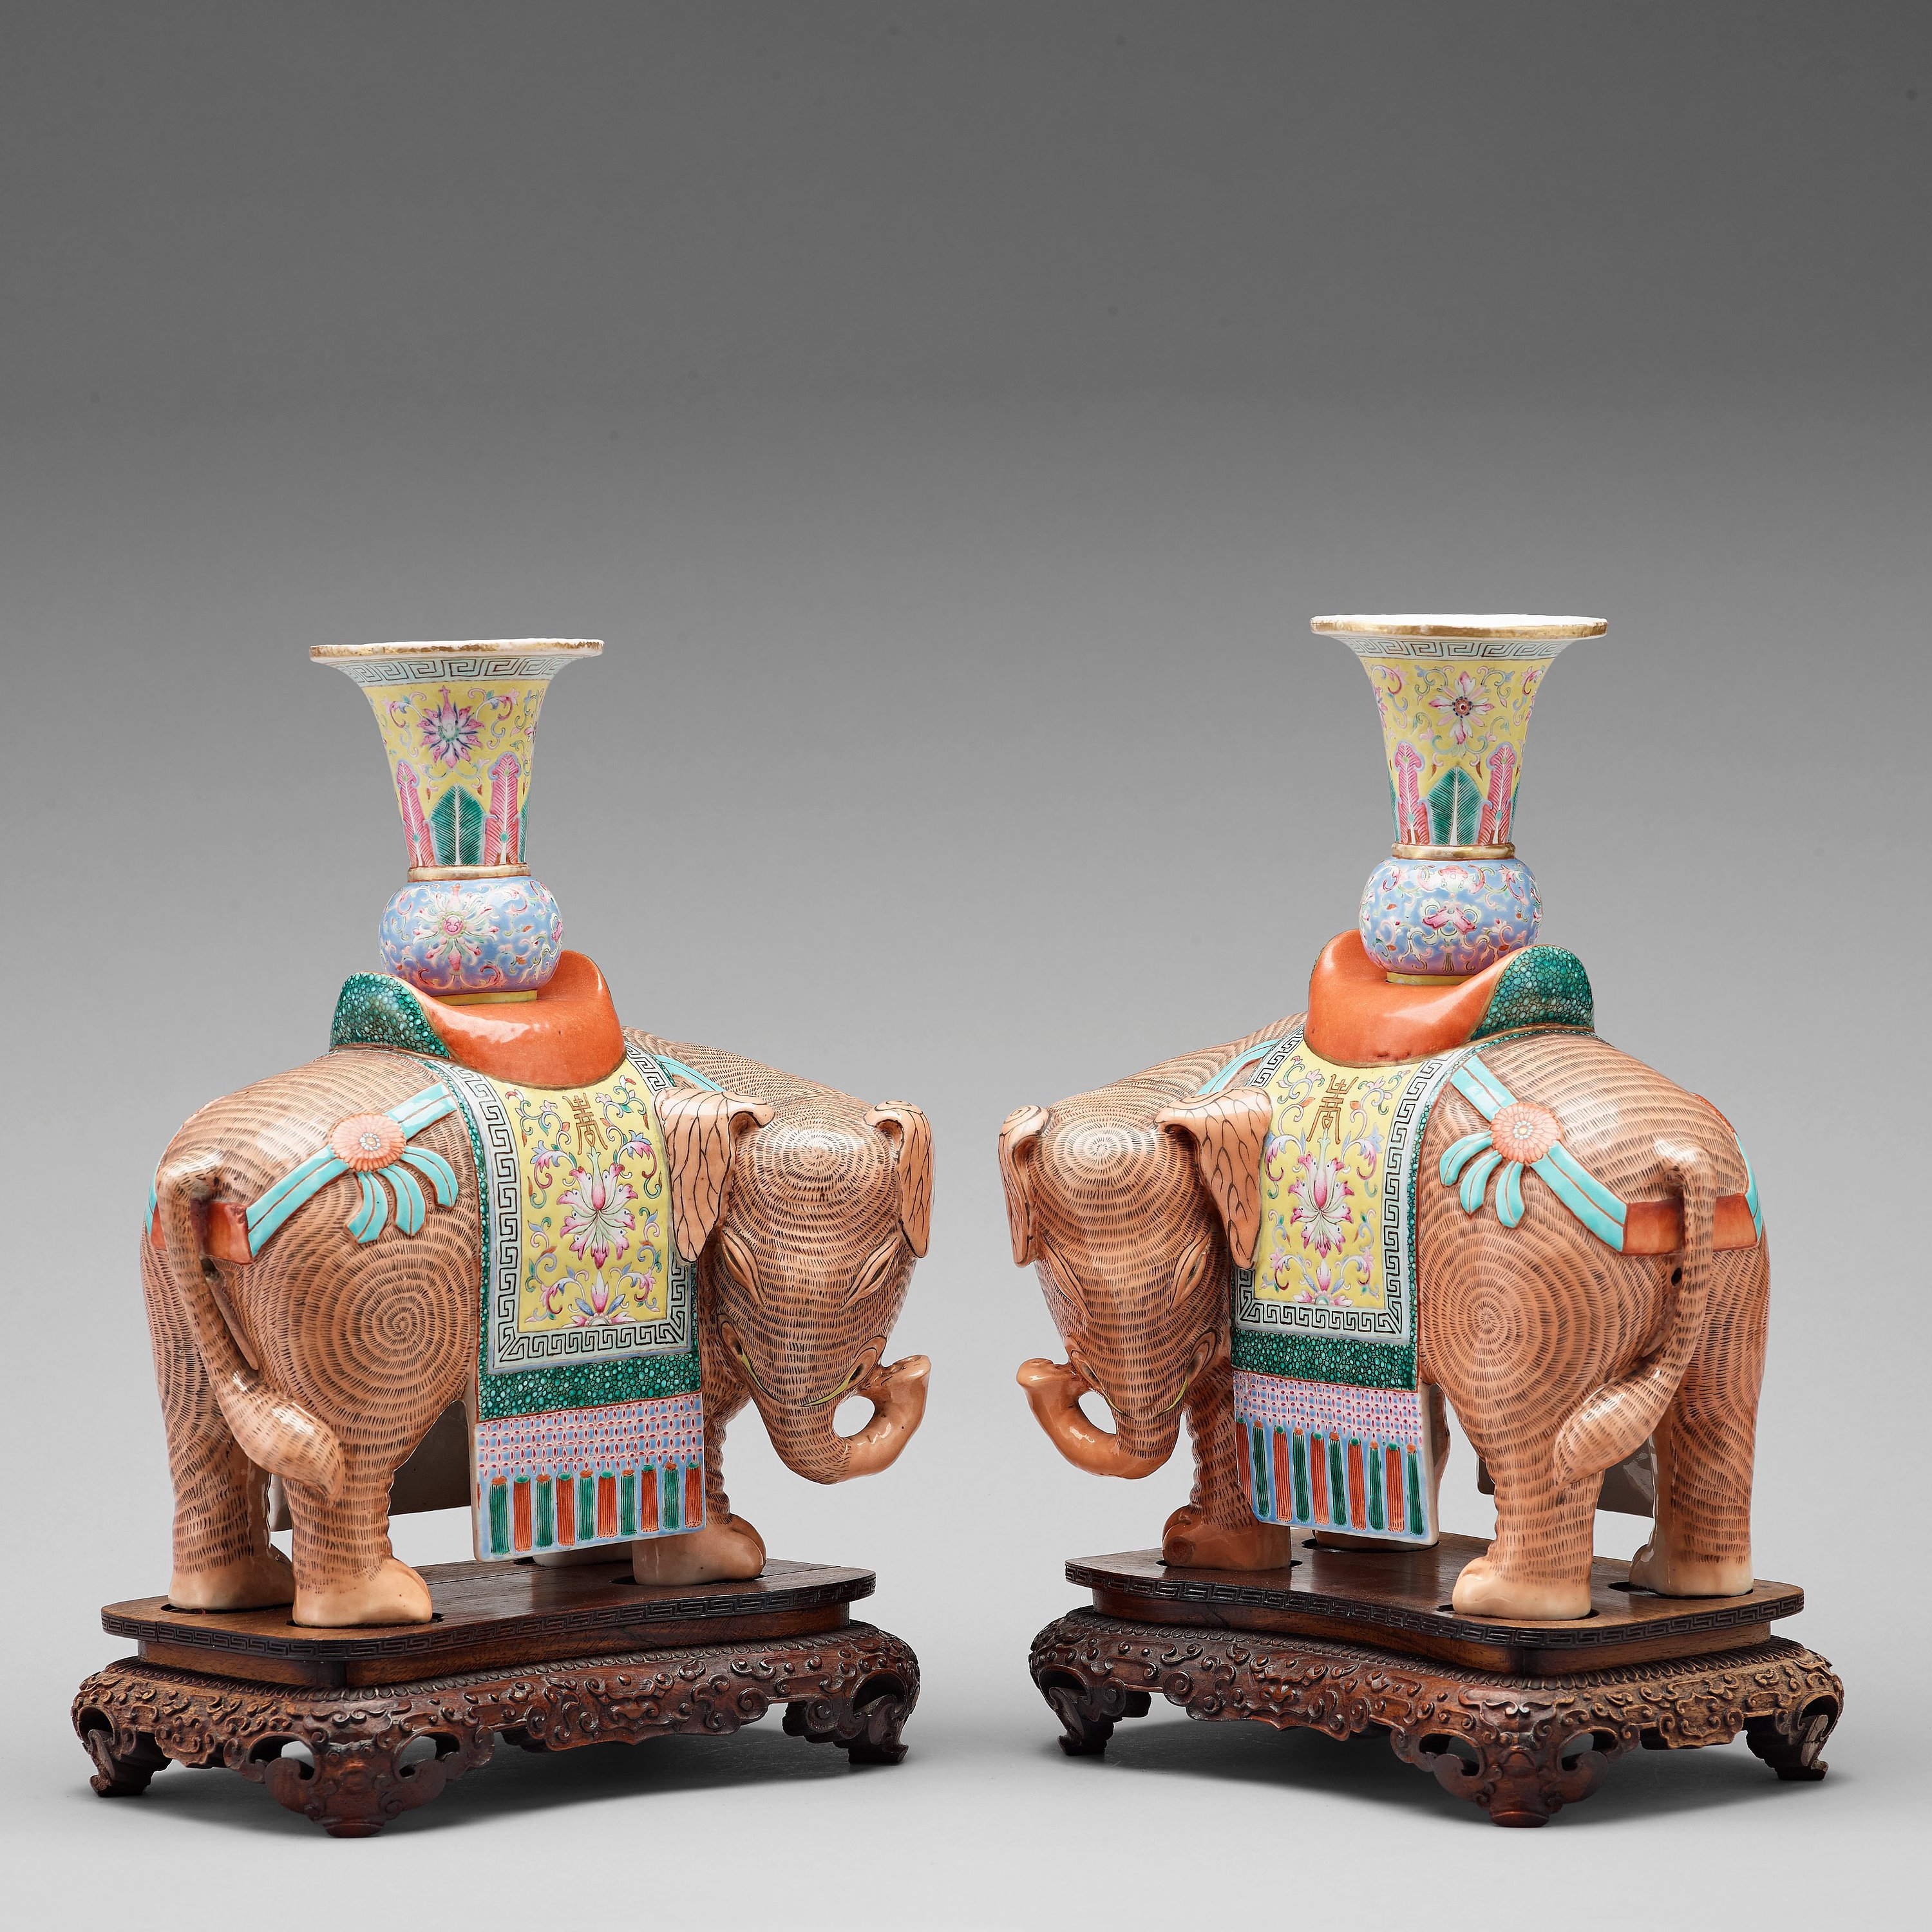 A pair of famille rose caparisoned elephants, Qing dynasty, Jiaqing